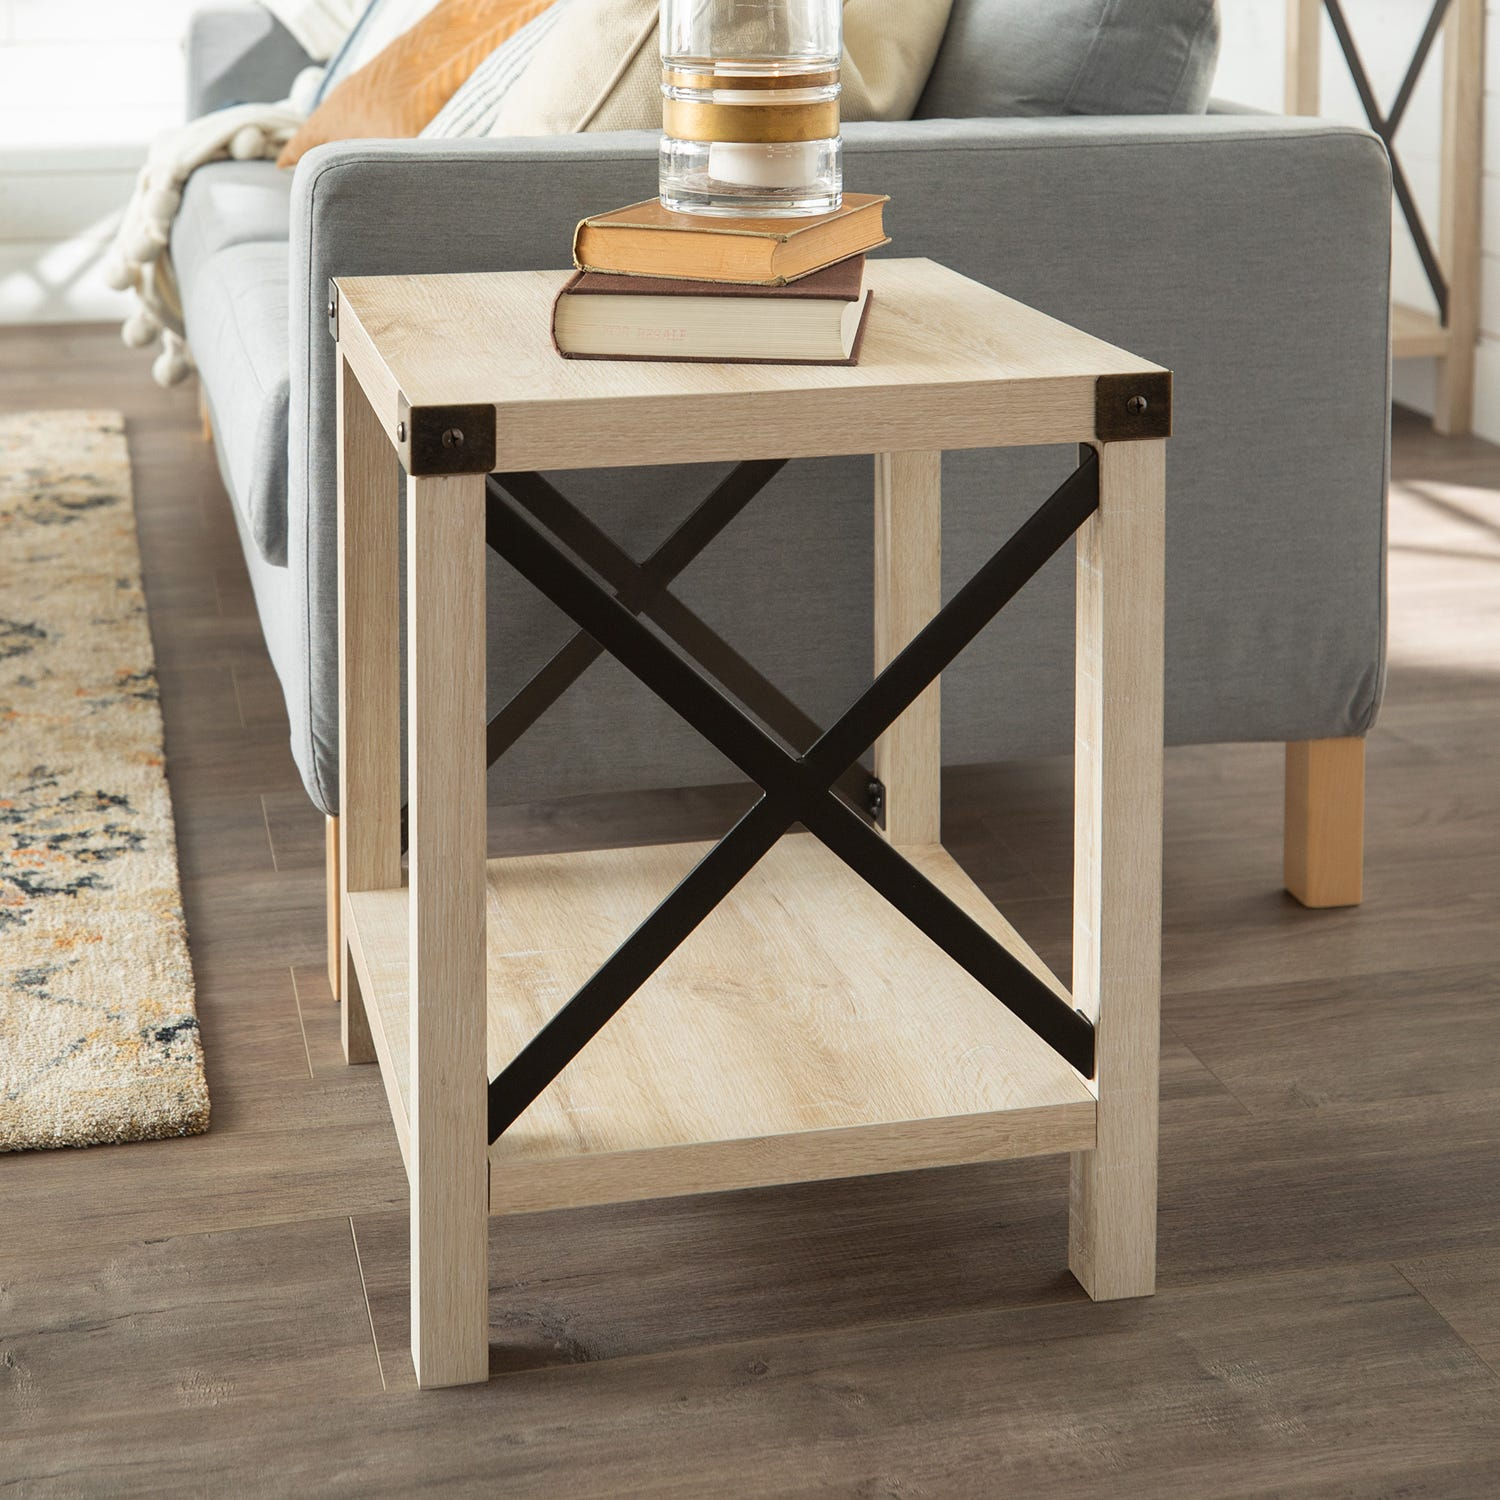 modern farmhouse white oak side table pier end tables thank you mor furniture dining used stanley room round outdoor bbq weather bedside alternatives unfinished small desk glass